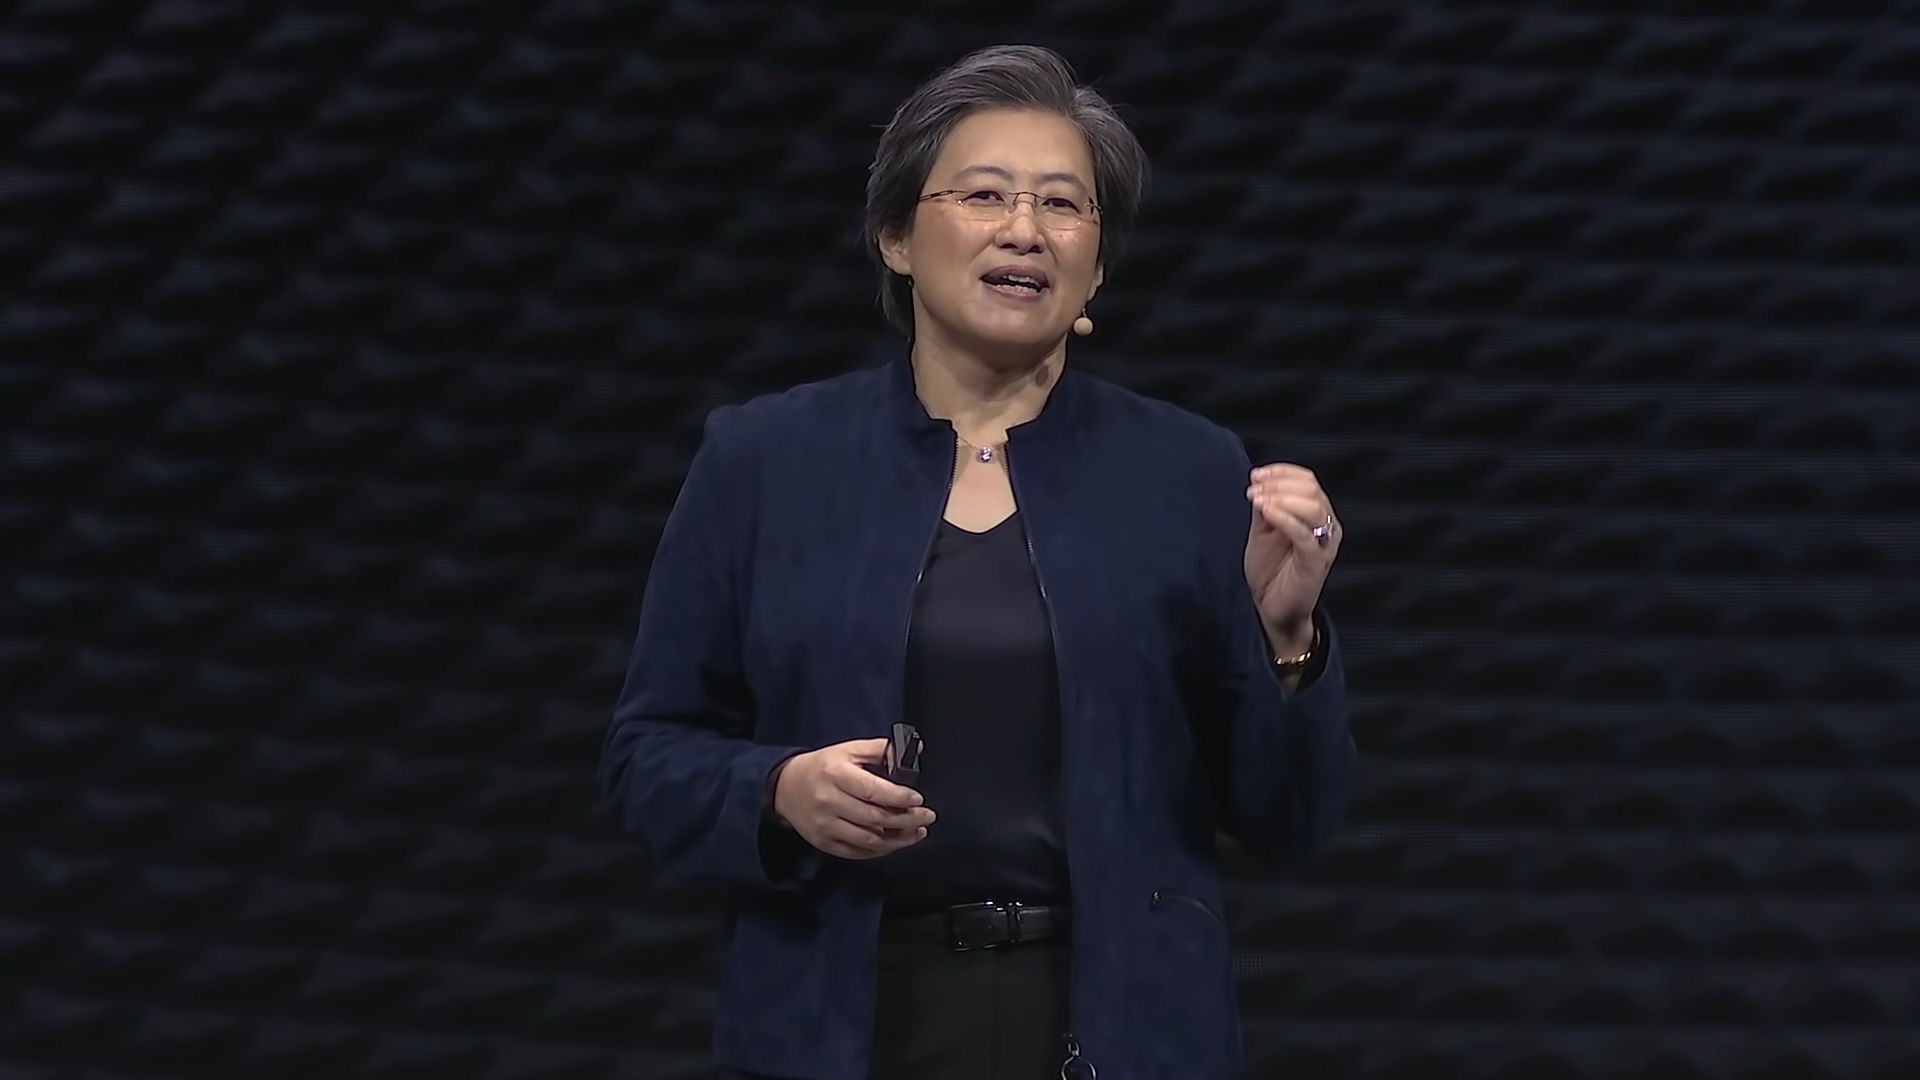 AMD CEO Lisa Su to present at CES 2021 on January 12th ...